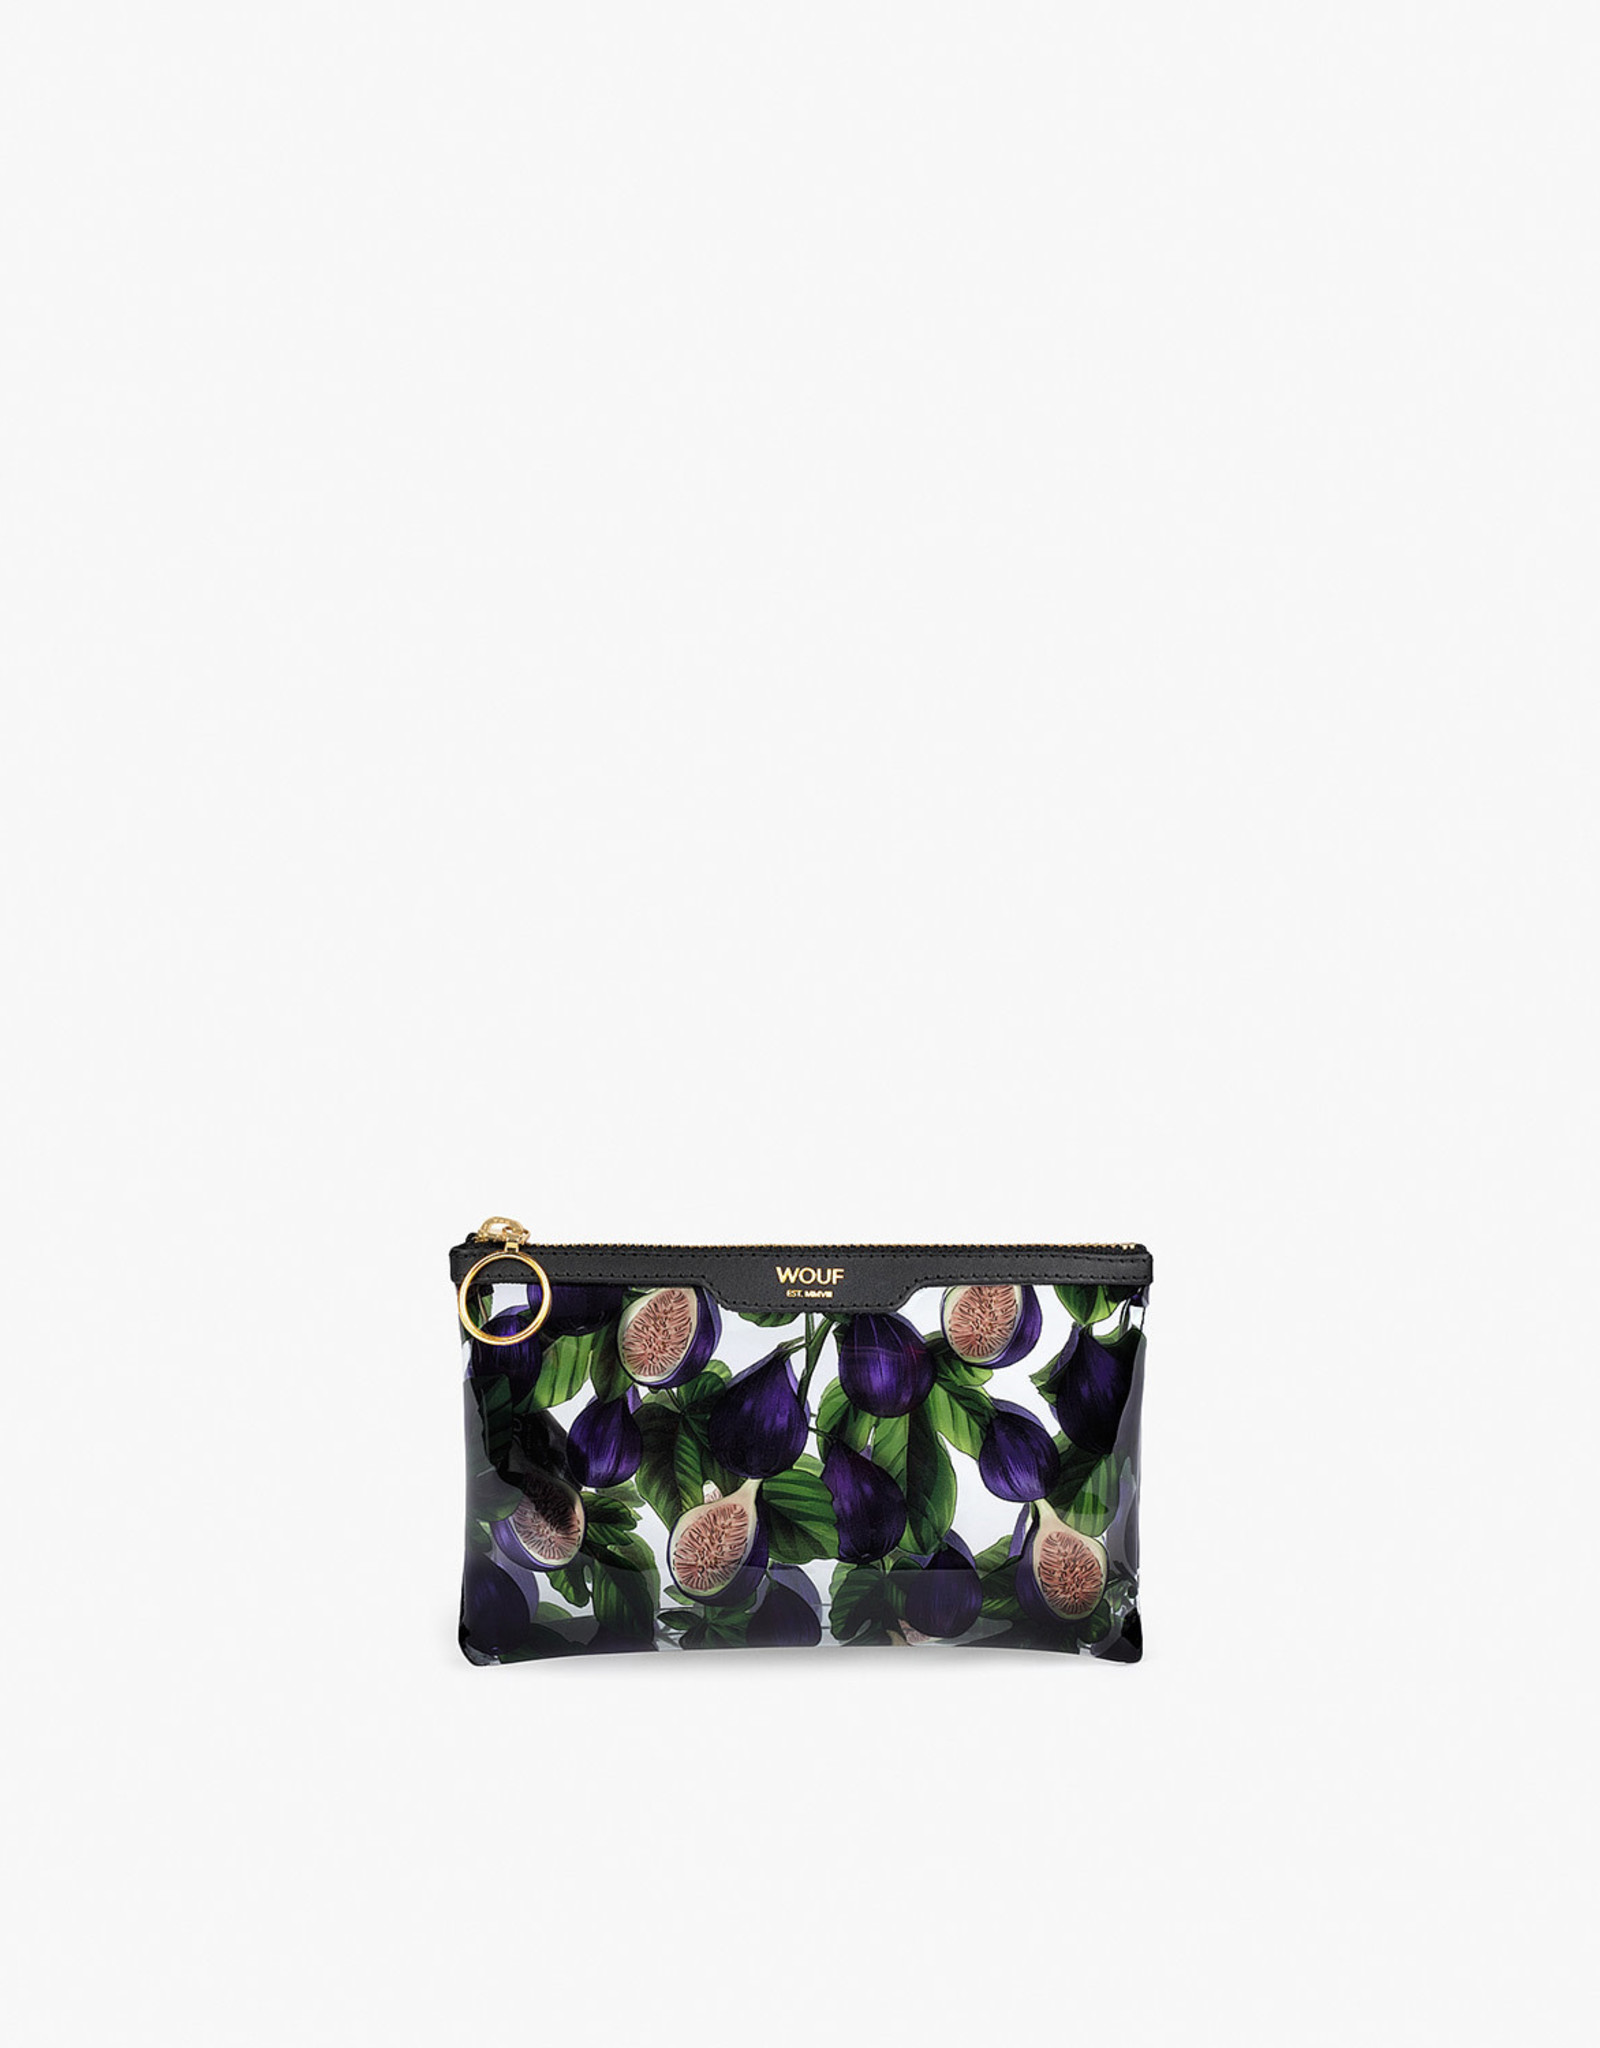 WOUF WOUF Black Figue Pocket Clutch